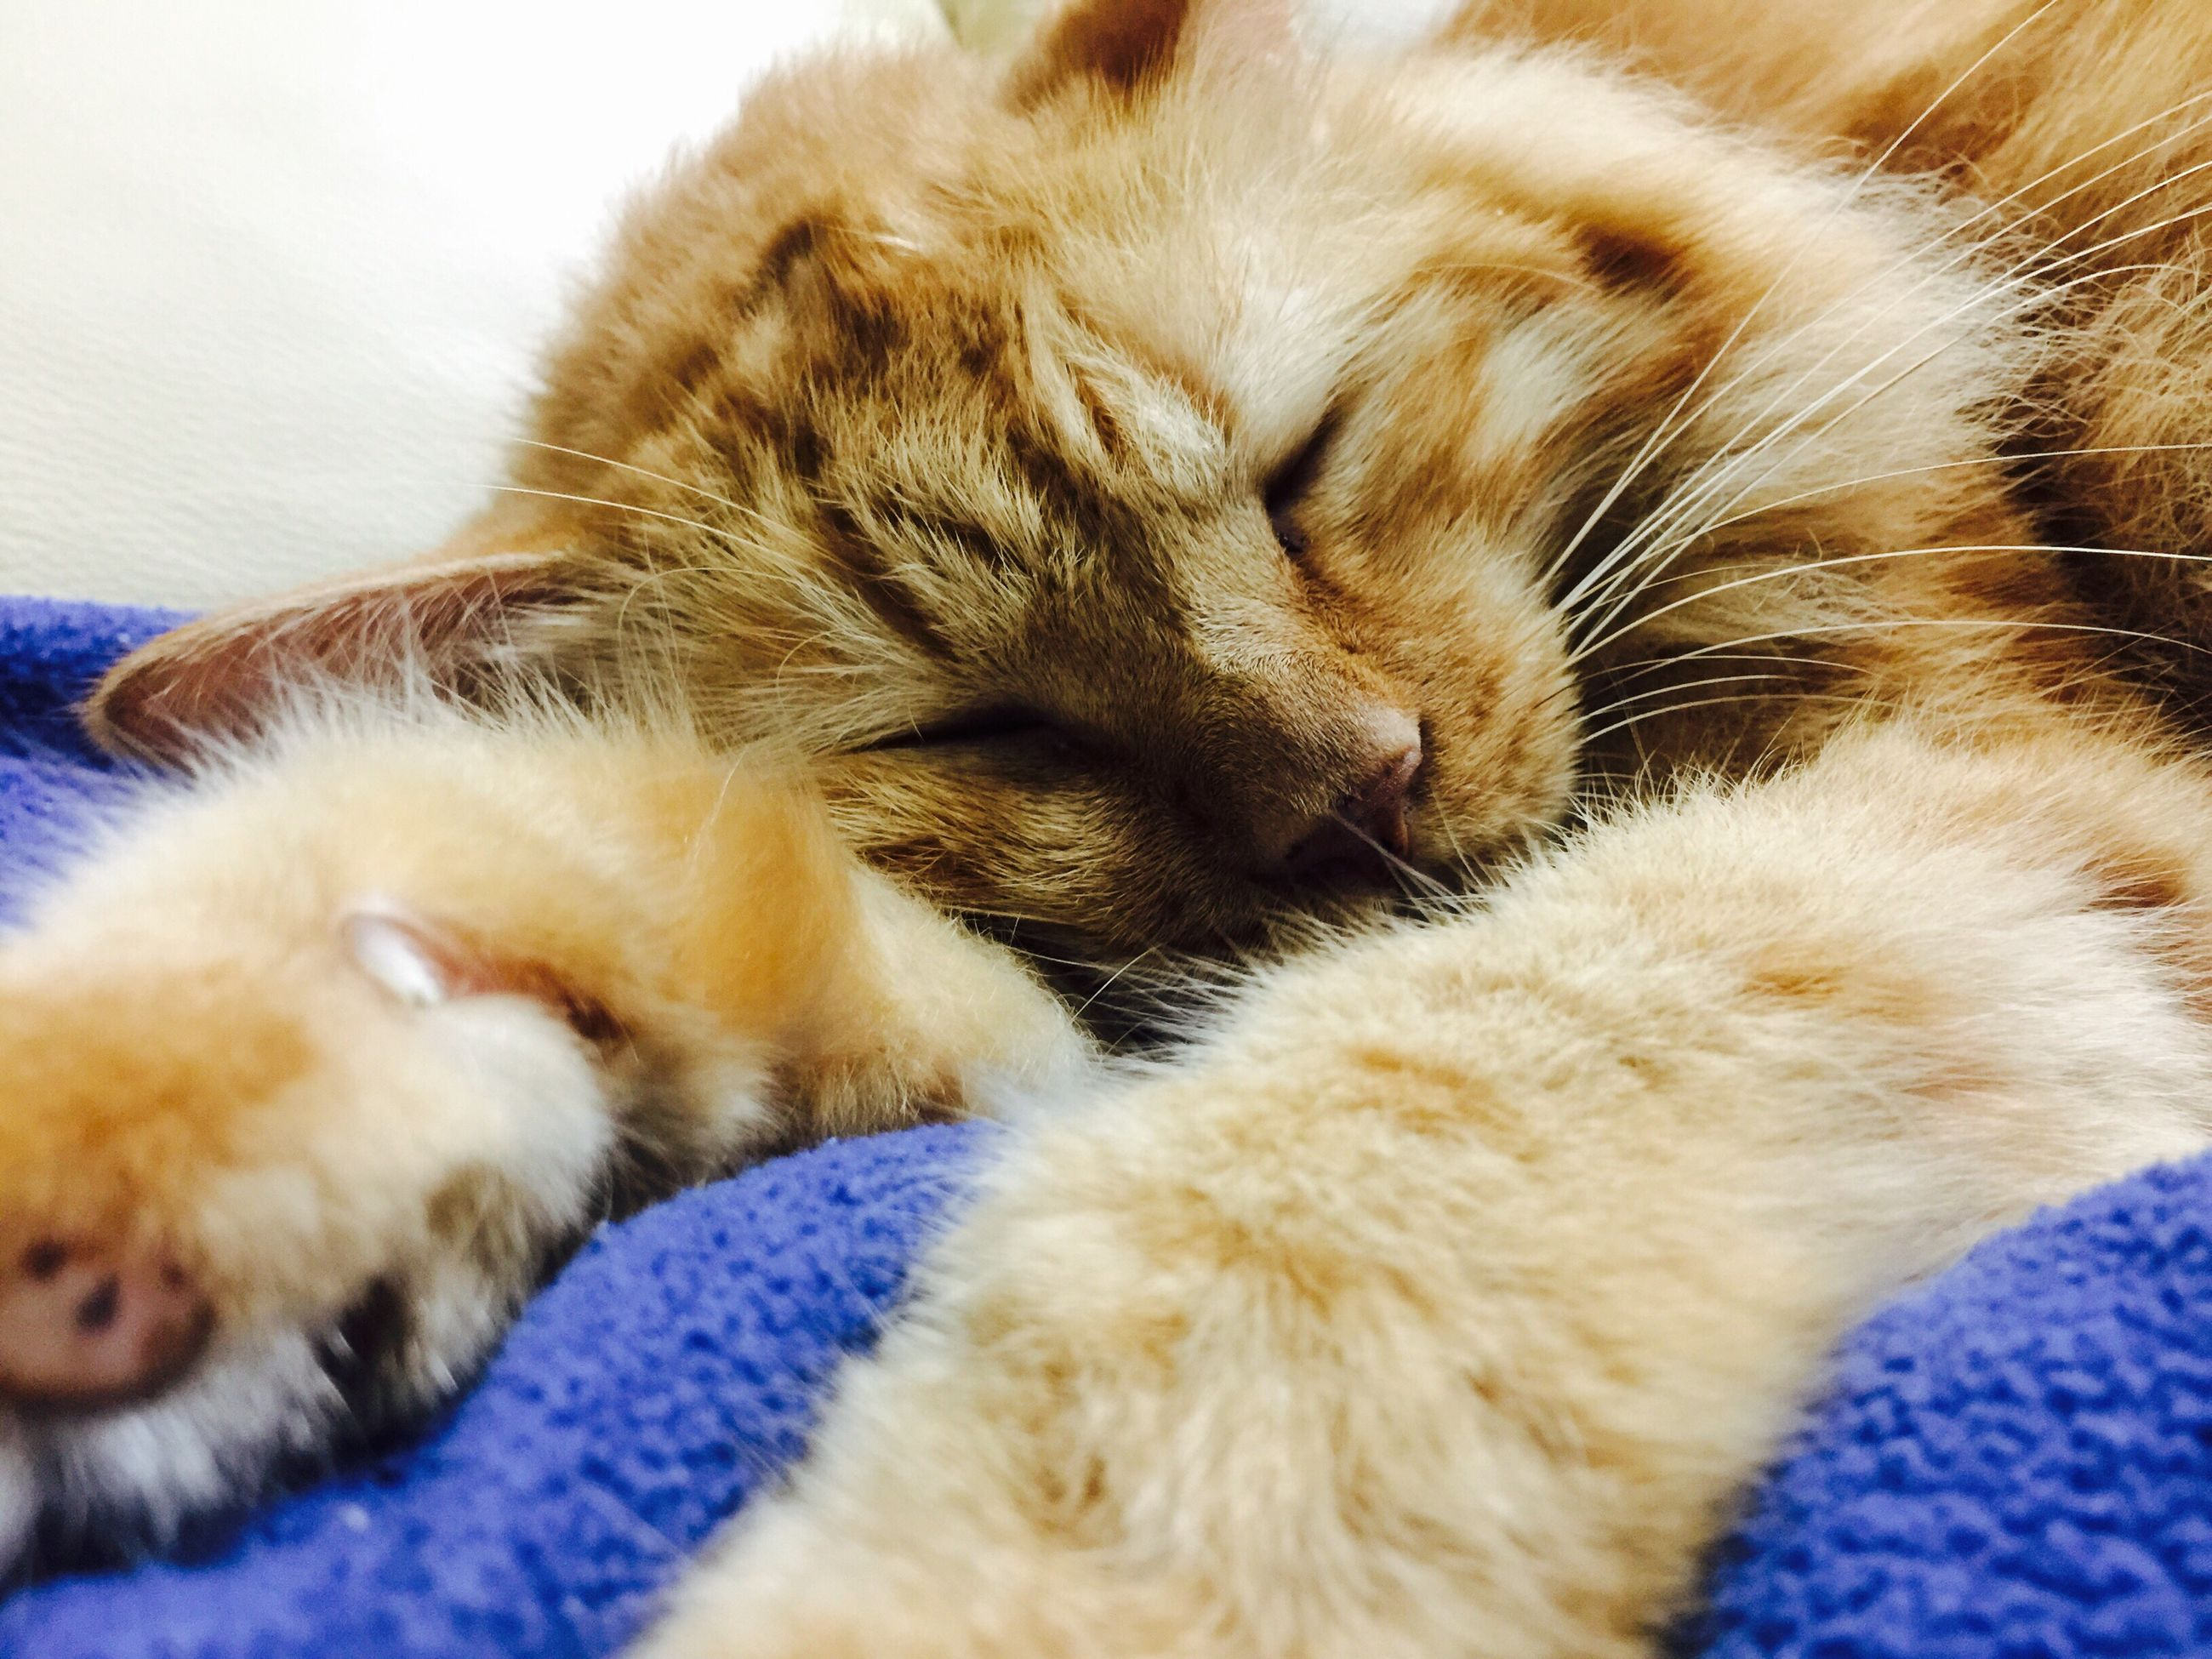 pets, domestic animals, one animal, animal themes, relaxation, domestic cat, mammal, indoors, sleeping, resting, bed, close-up, cat, feline, animal head, lying down, whisker, at home, zoology, focus on foreground, no people, animal behavior, laziness